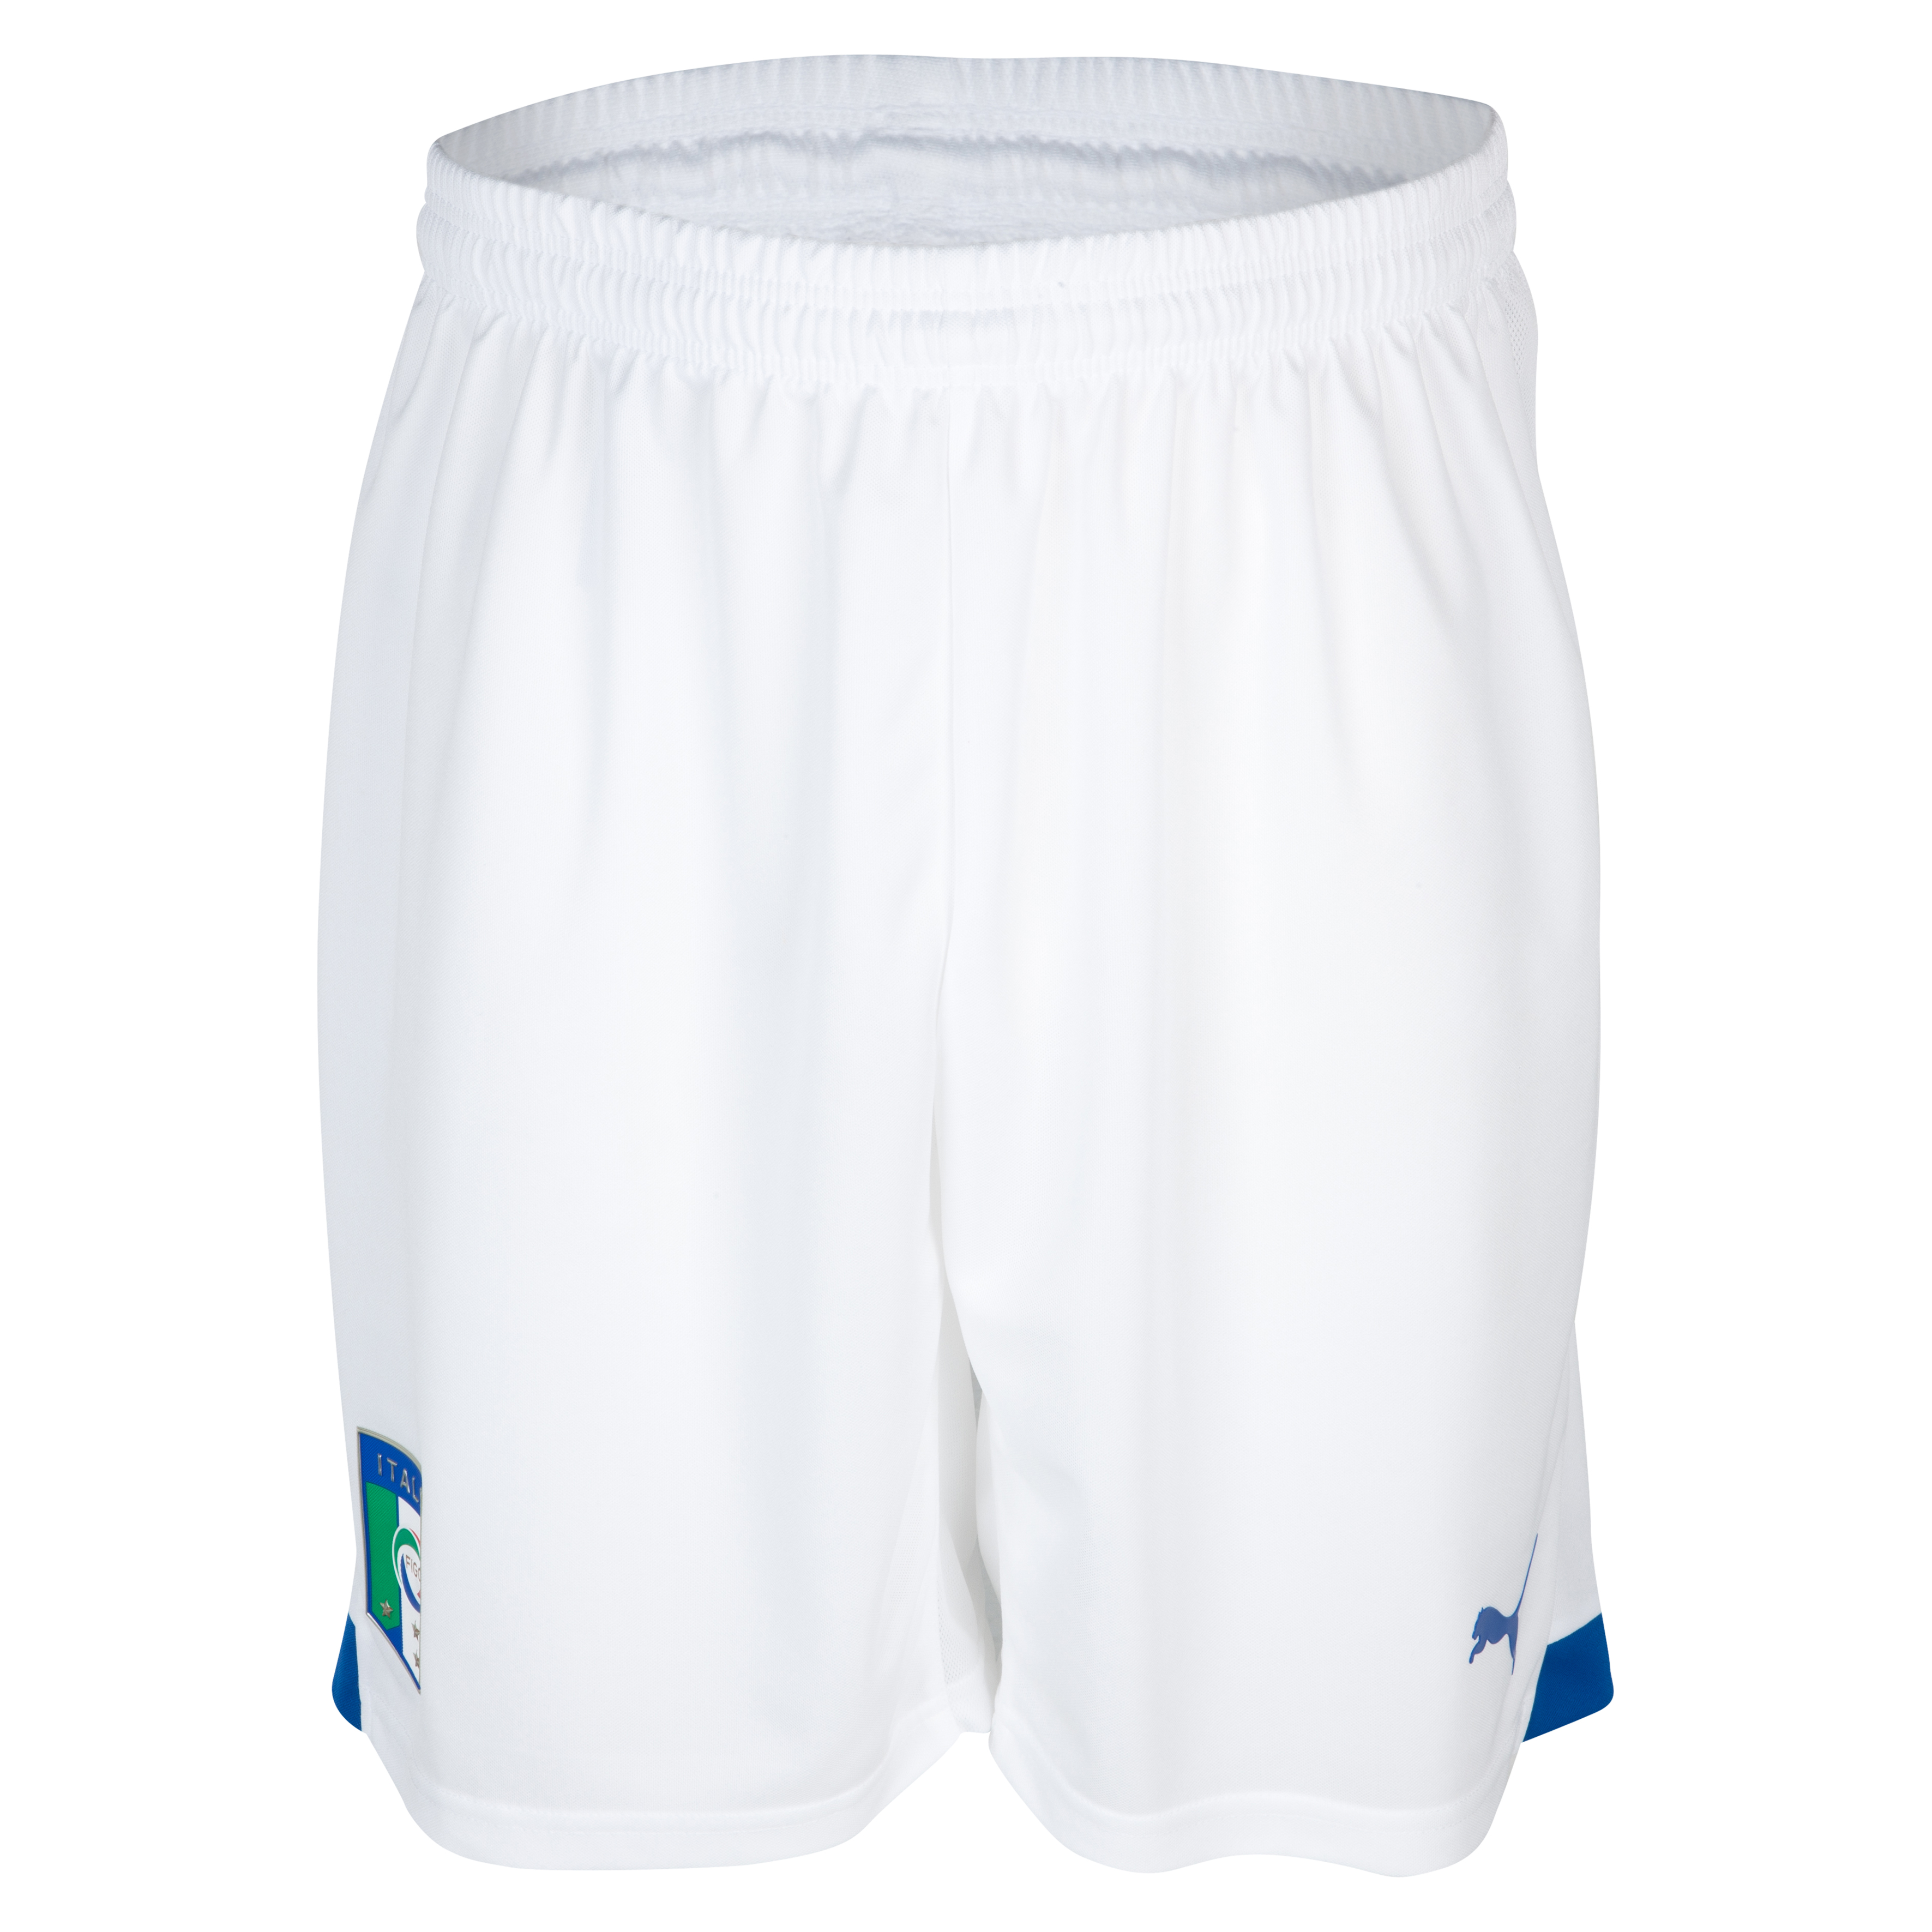 Italy Confederations Cup Home Shorts 2013